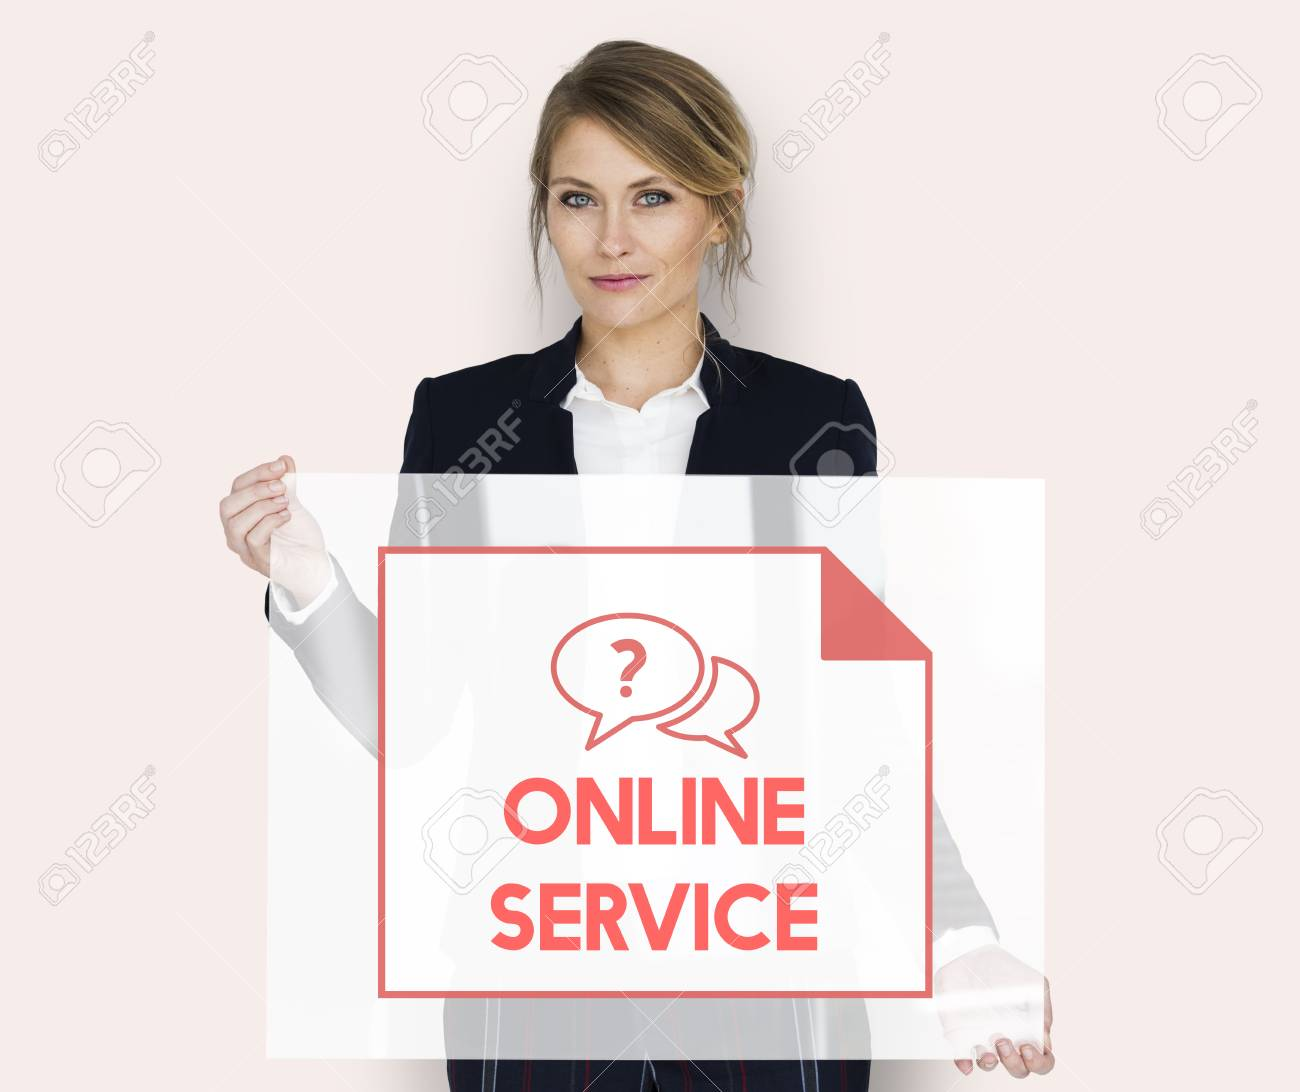 Customer Service Questions Faq Frequently Asked Questions Customer Service